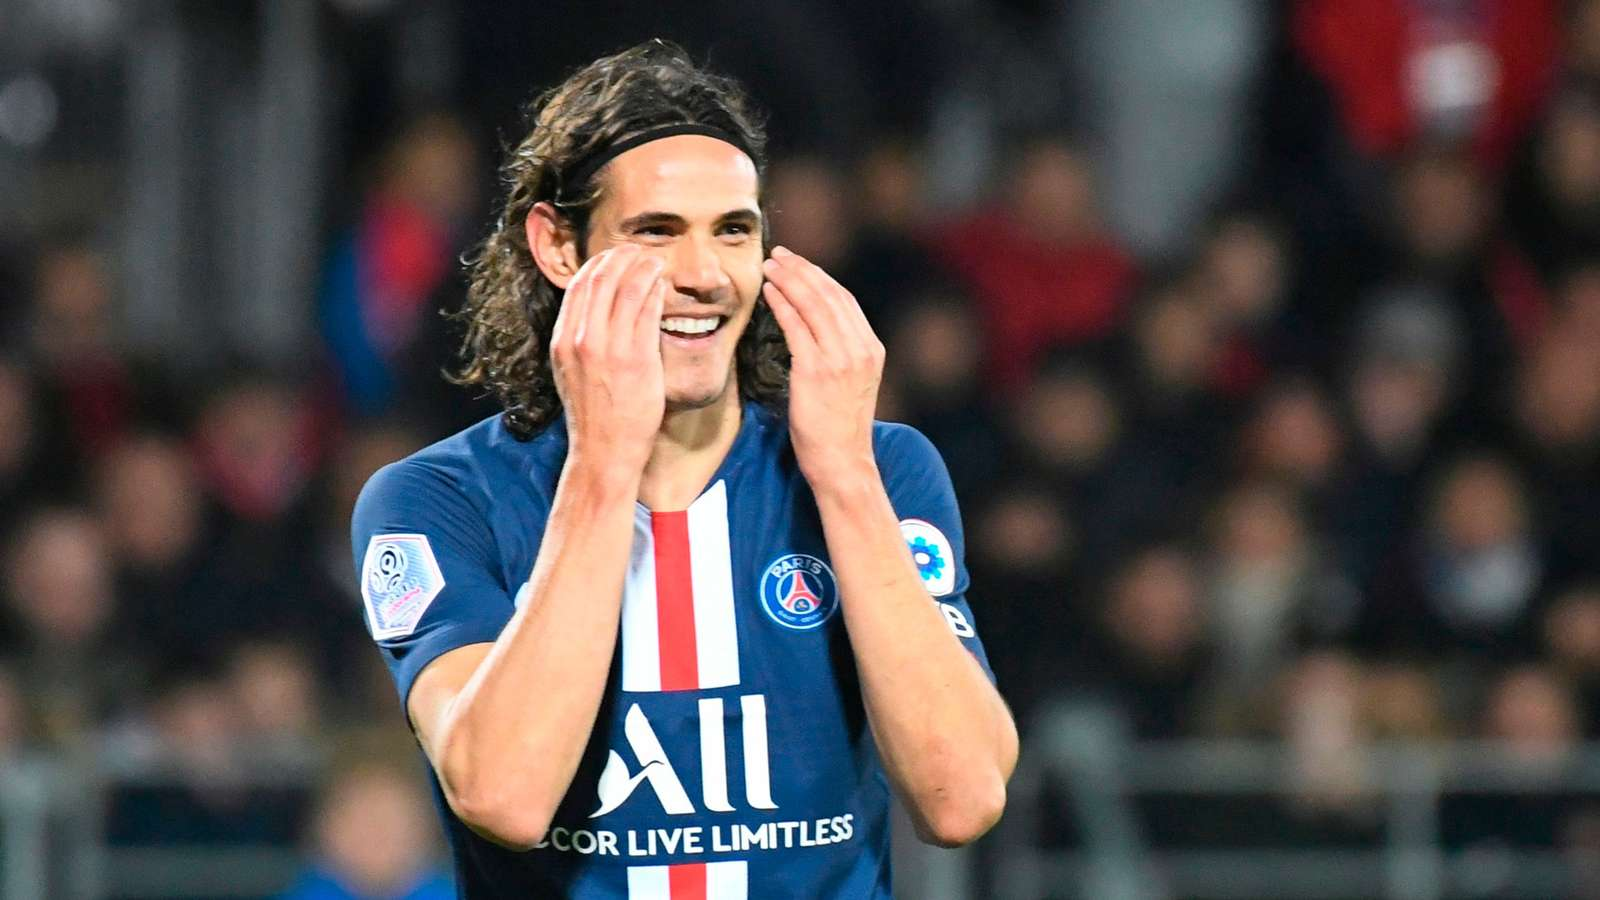 Man Utd 'missing a trick' by not signing Benfica-bound Cavani, says Saha